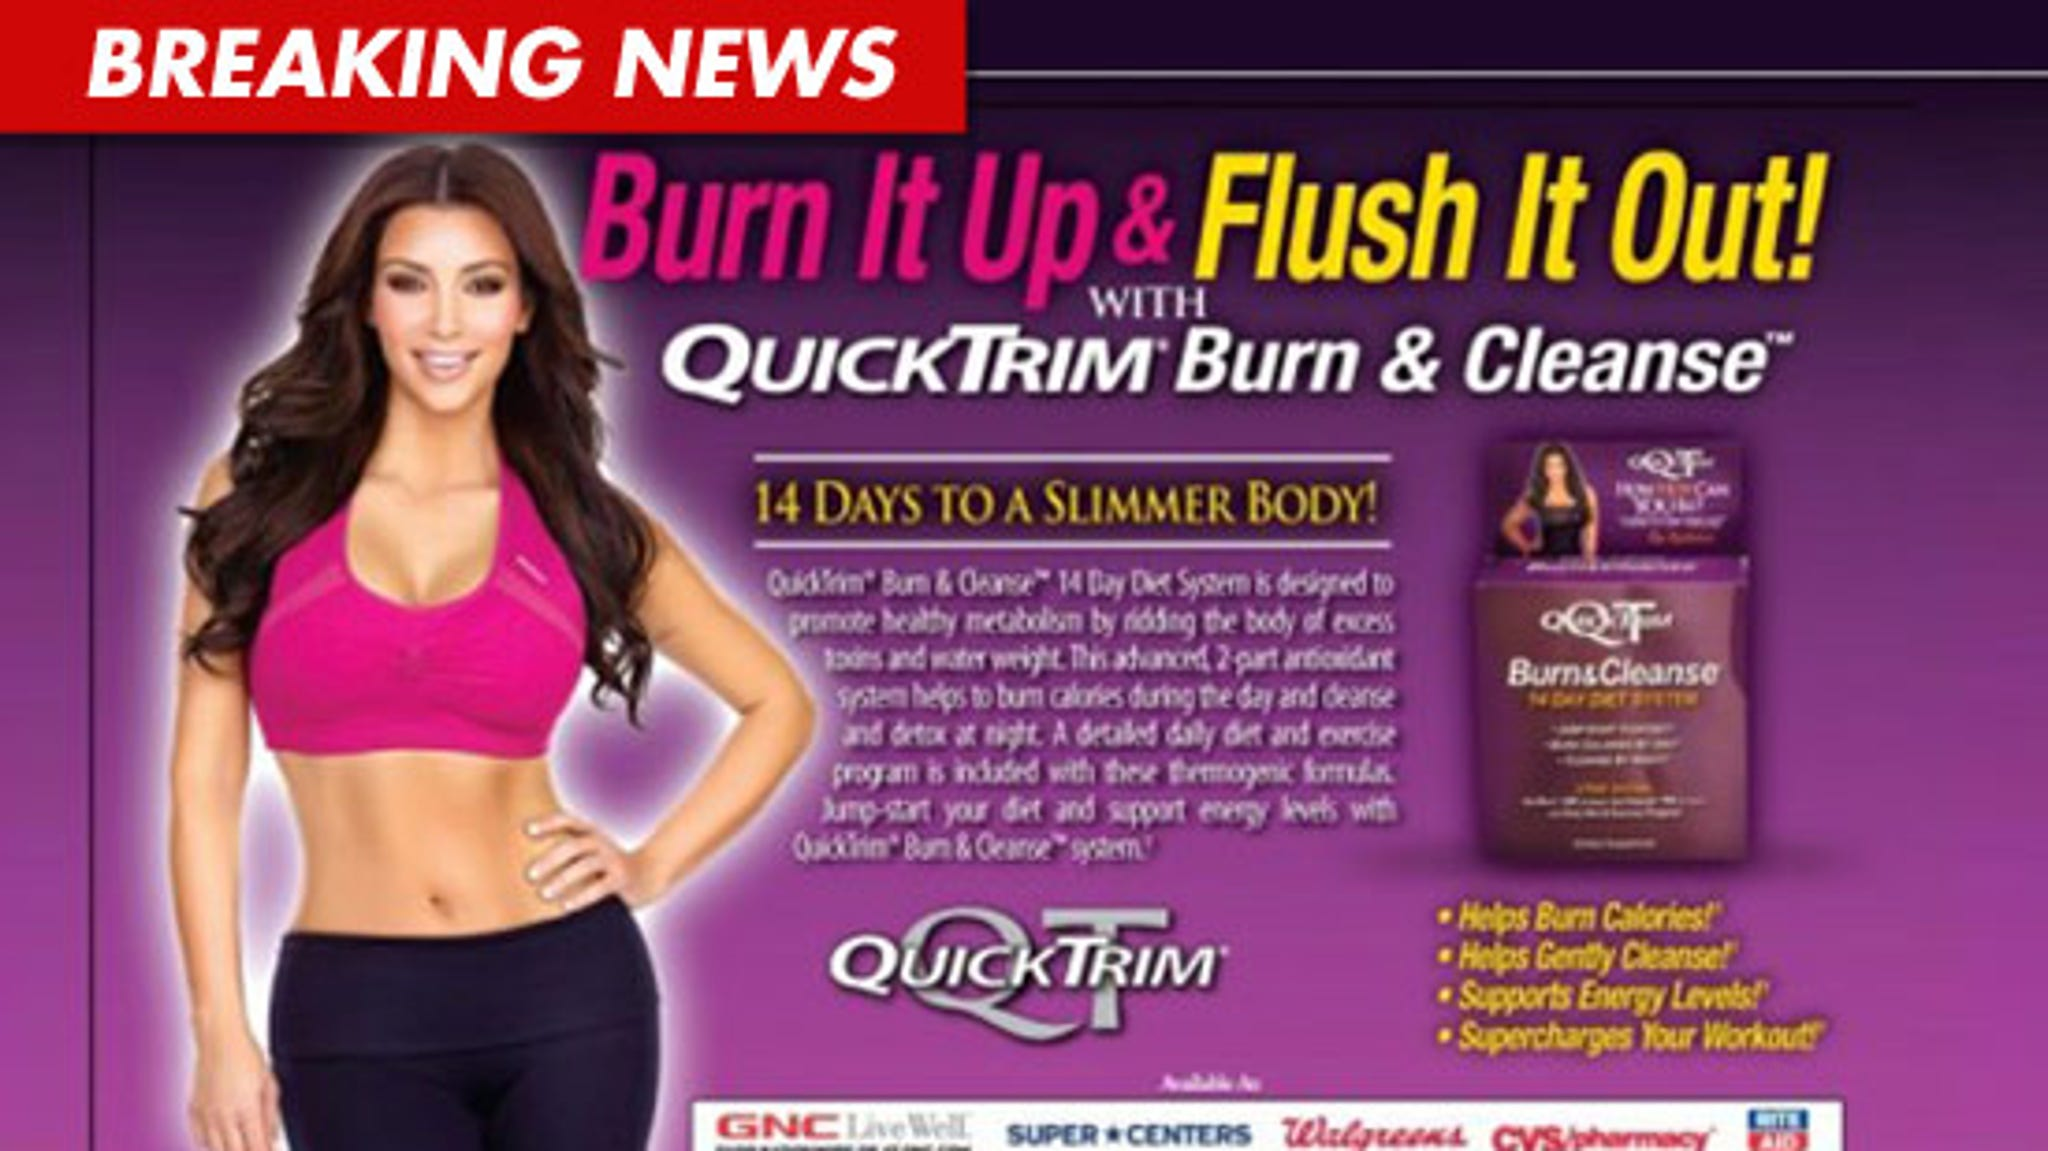 Kim Kardashian Sisters Sued For 5 Mil Your Quicktrim Diet